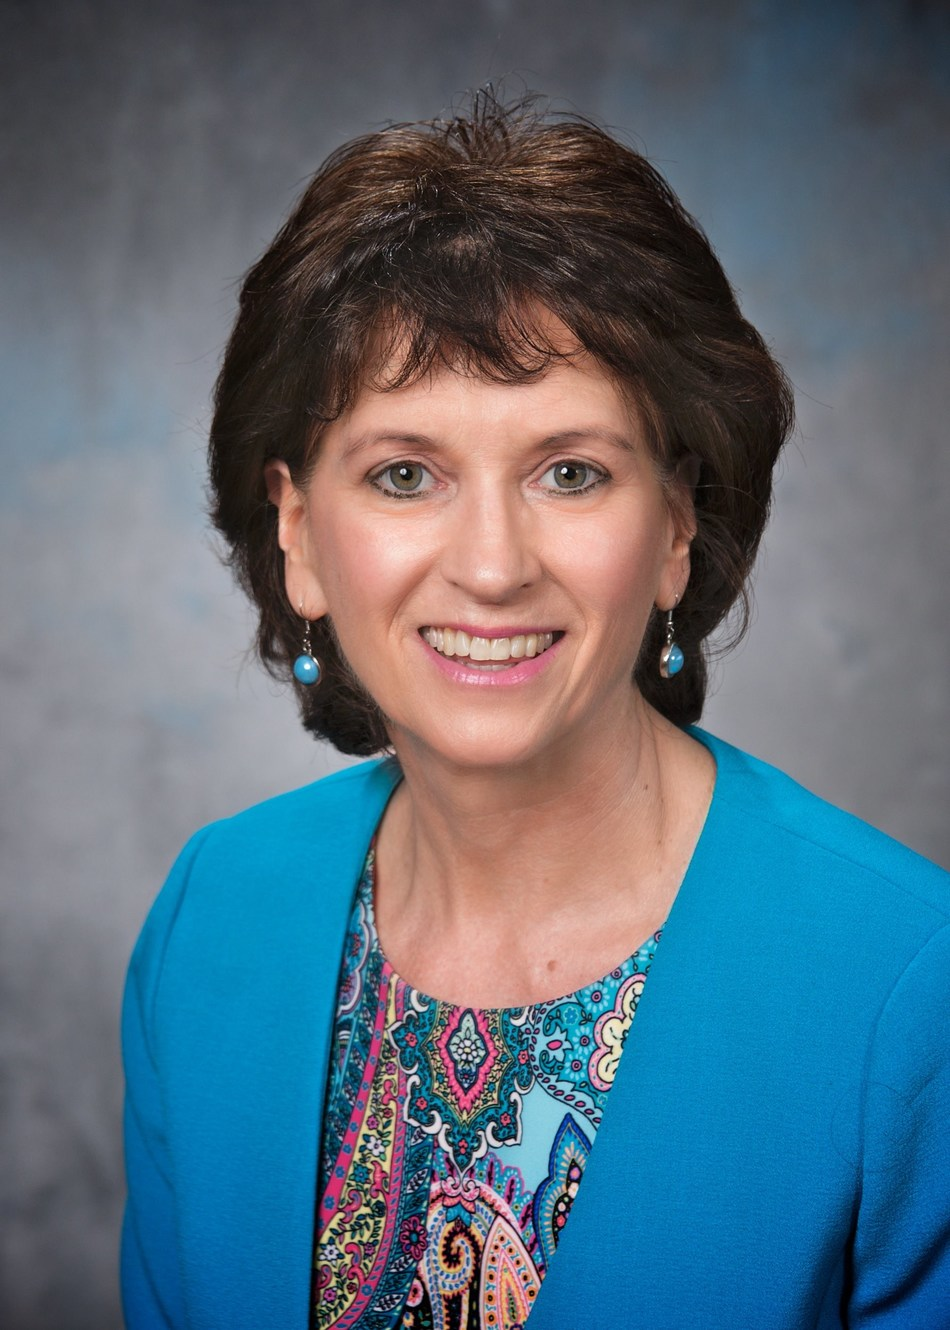 Tricia Dandrow, Senior Vice President, Commercial Banking Team Leader, Contact Information: 25 Braintree Hill Office Park, Suite 409, Braintree, MA 02184, (617) 226-4491 - TDandrow@brkl.com